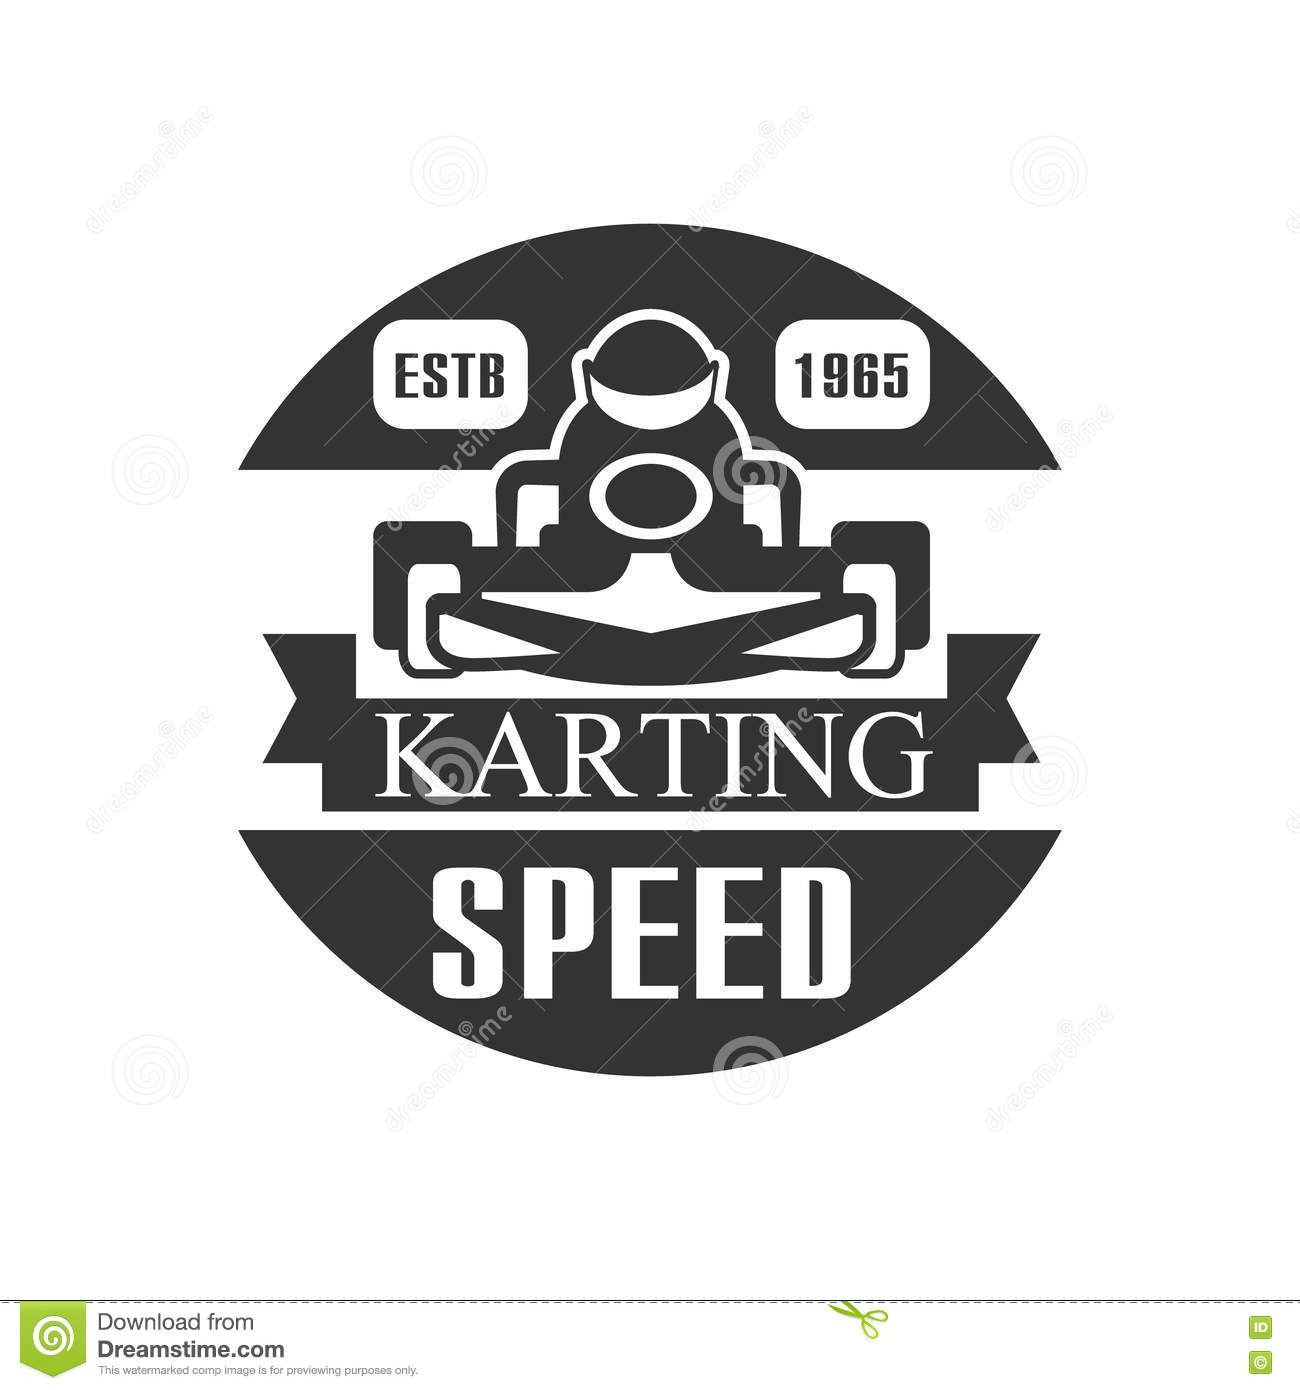 Design car club logo - Karting Club Speed Racing Black And White Logo Design Template With Rider In Kart Silhouette Royalty